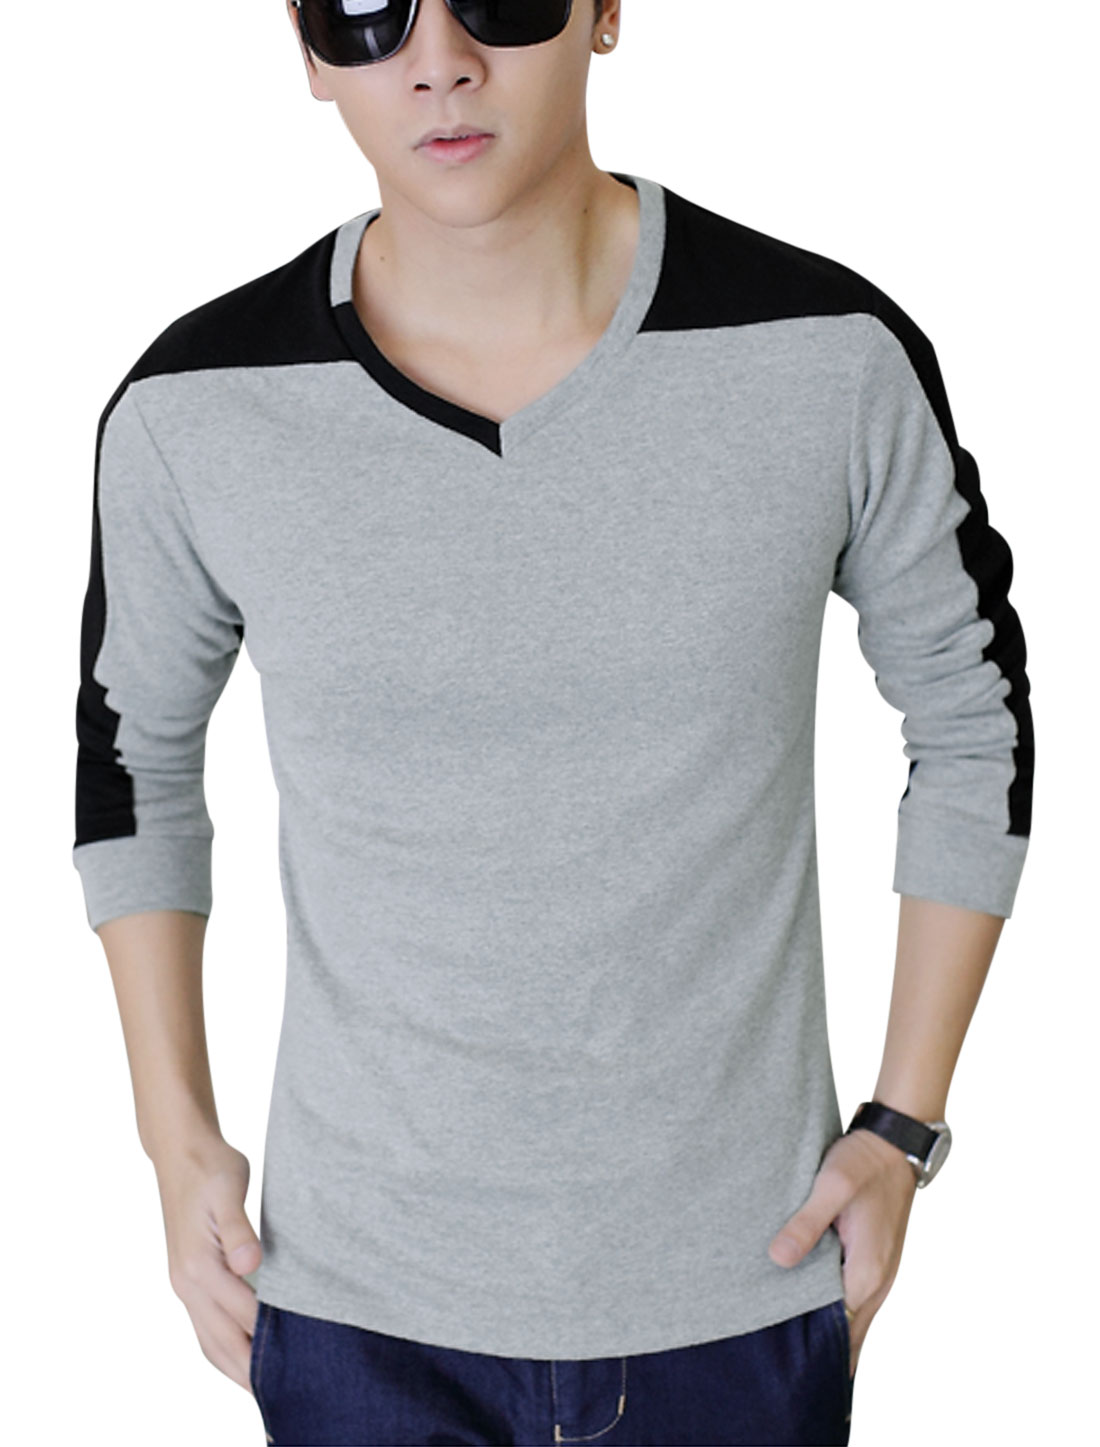 Men Stretchy Splicing Colorblock Trendy Slim Tee Top Light Gray M